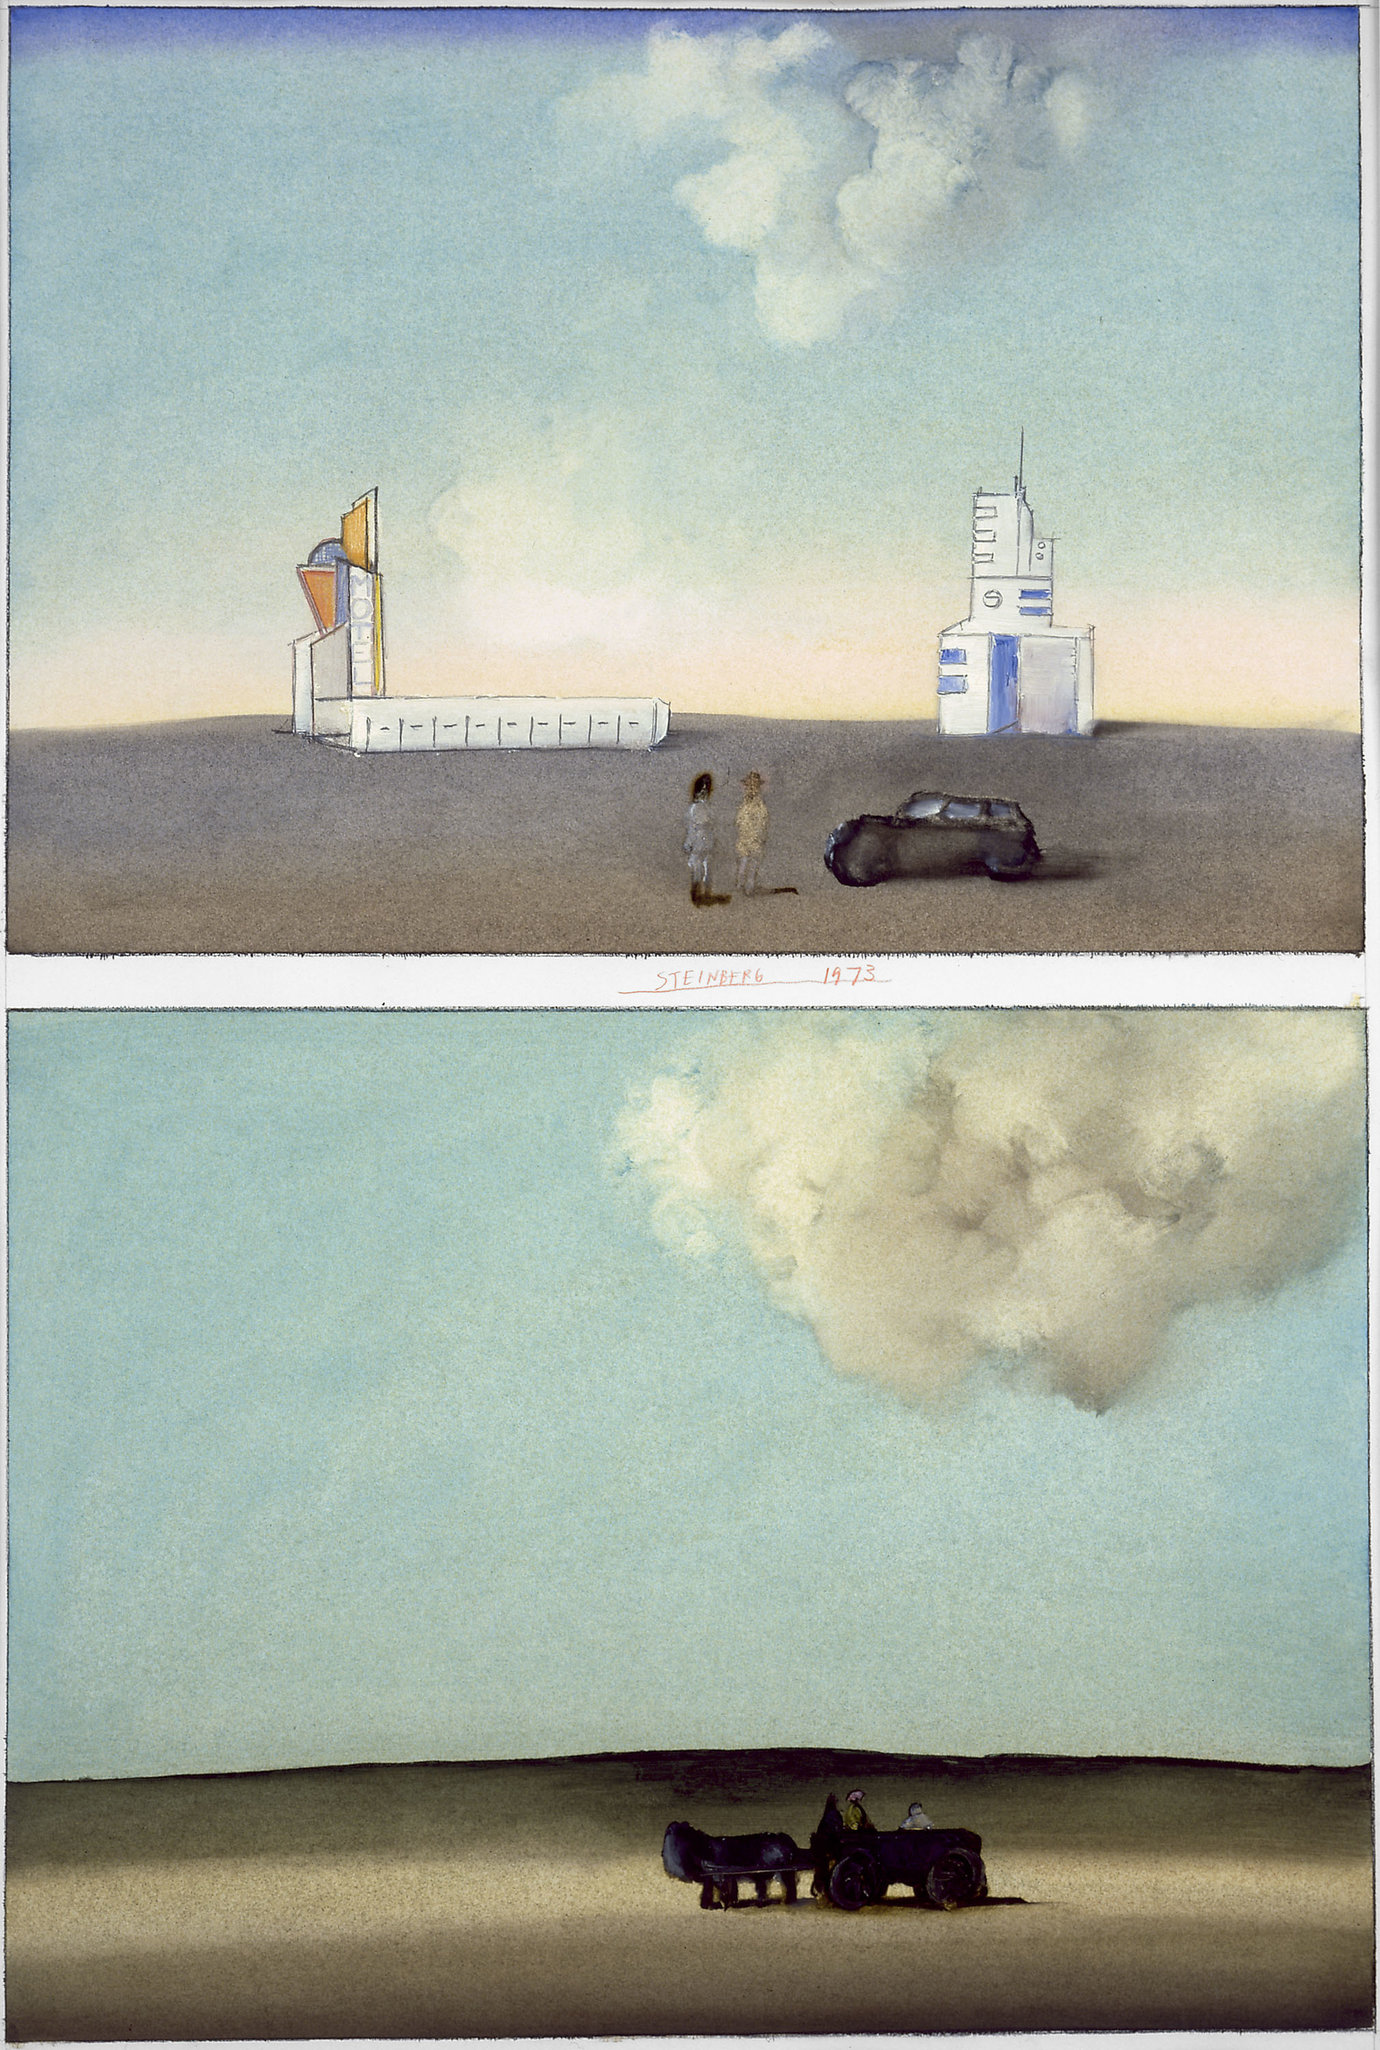 ", 1973. oil on paper, 28-1/4 x 19-3/4"" (64.1 x 50.2 cm)."